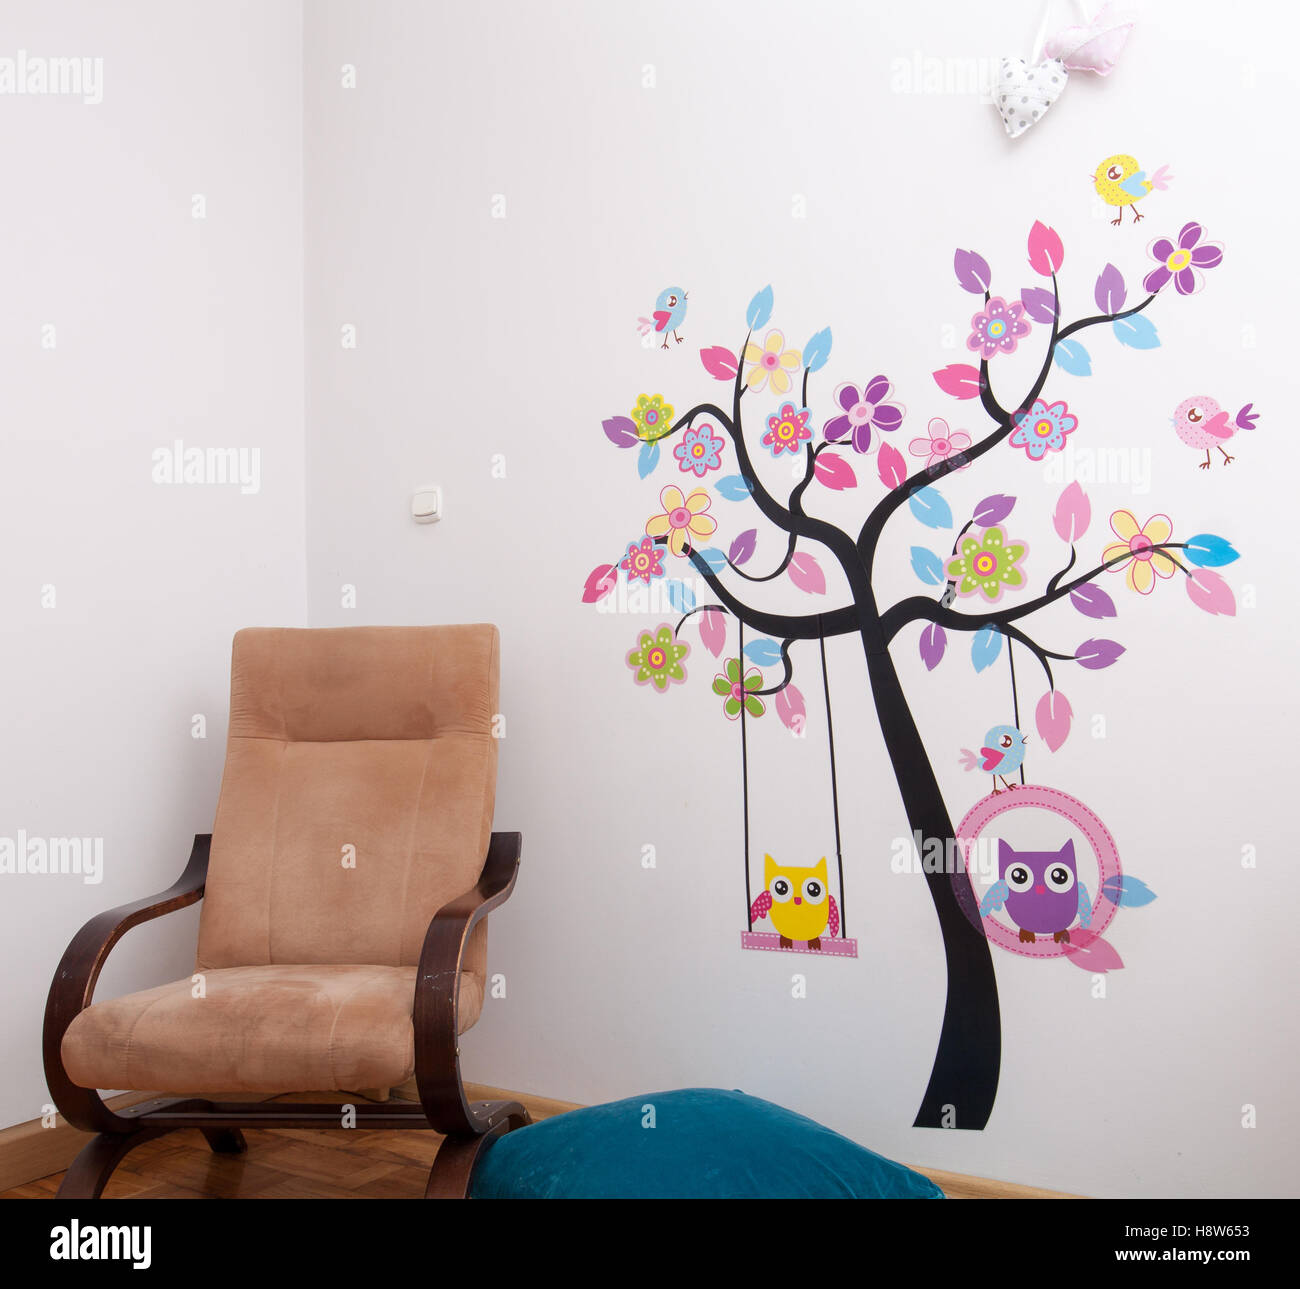 Handmade Posters Stuck Tree With Birds On The Wall In Children S Stock Photo Alamy